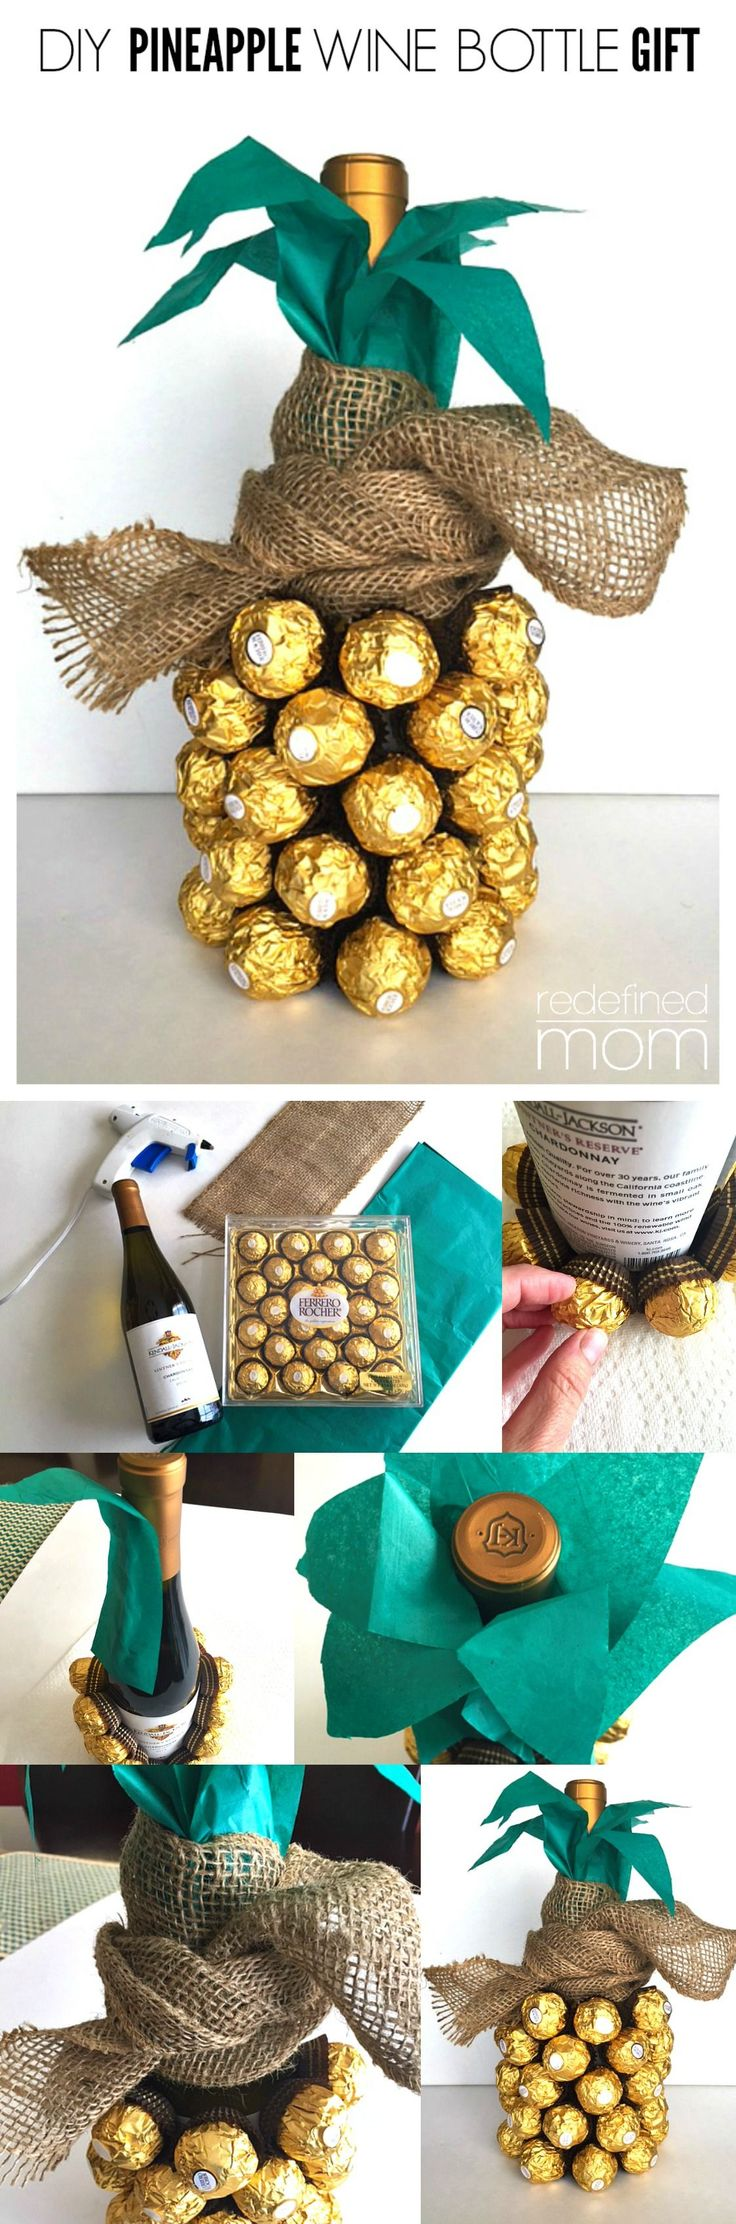 The pineapple has always been a symbol of hospitality and luxury. With this DIY Pineapple Wine Bottle Gift Tutorial, you can turn a bottle of bubbly into a hostess gift that is awe inspiring.